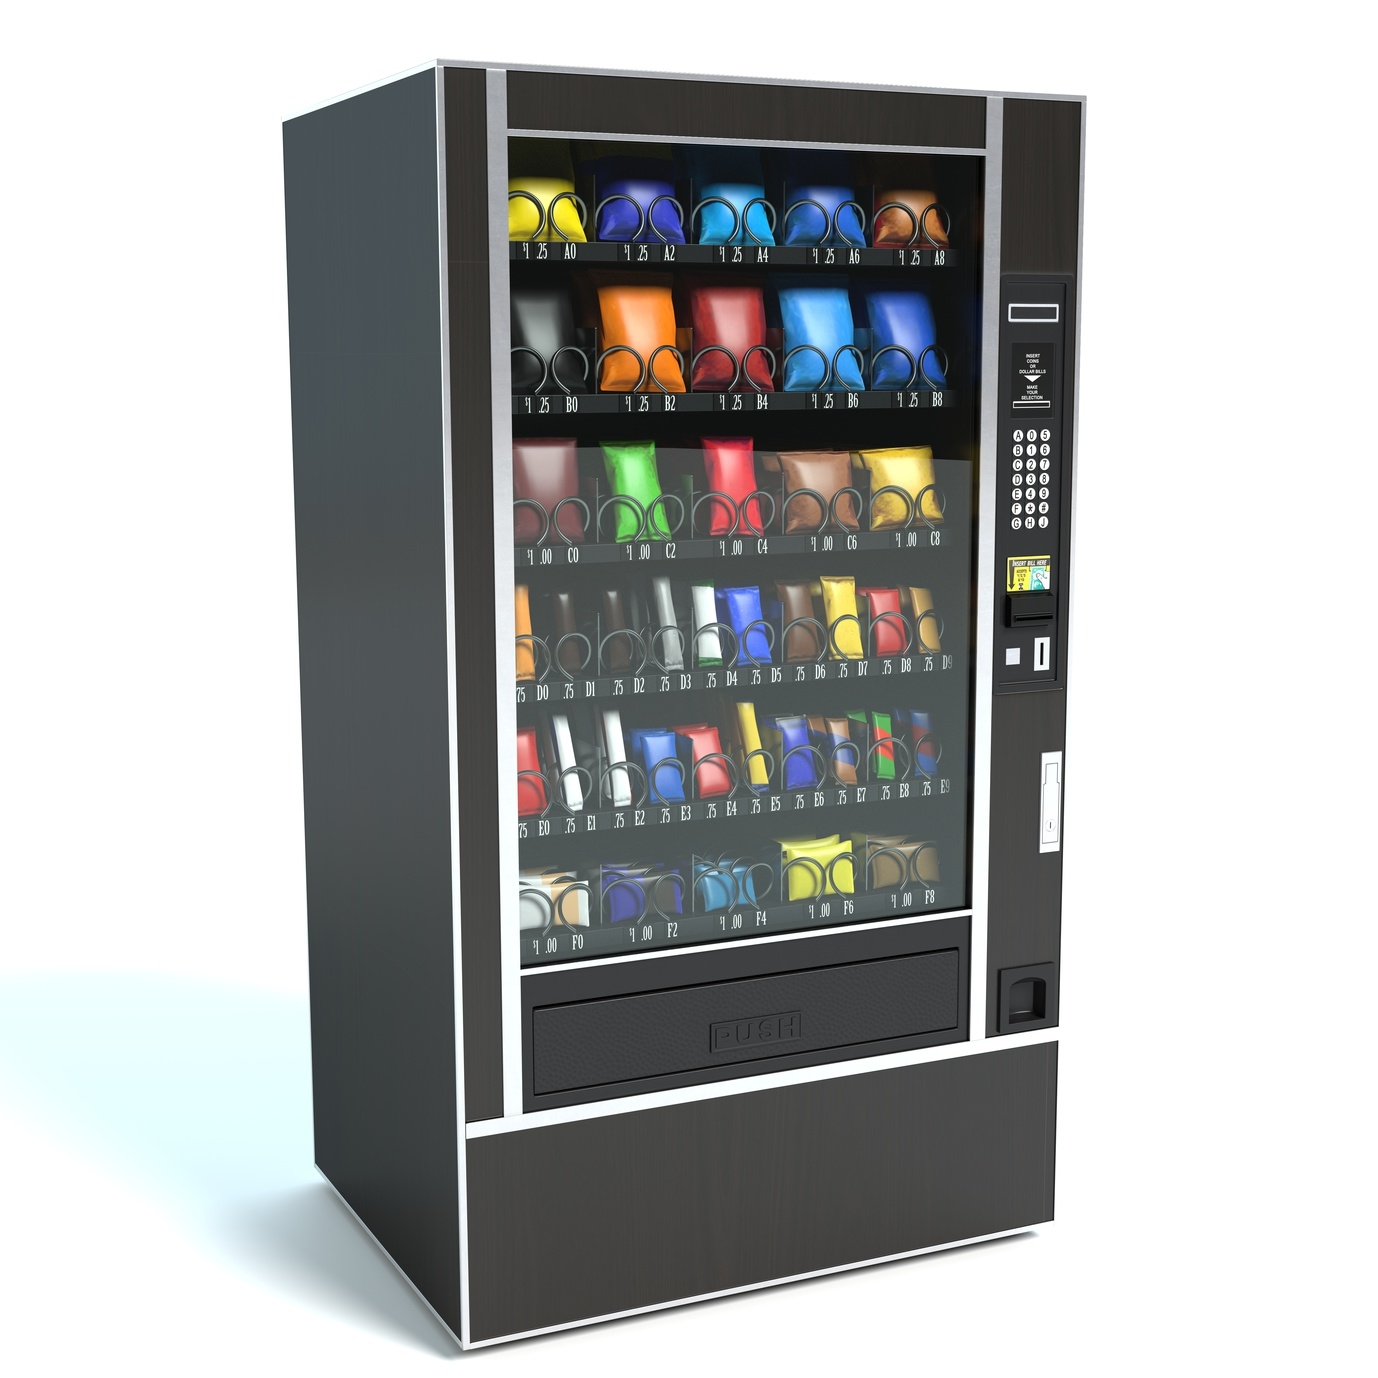 Proactiv coupon code for vending machine